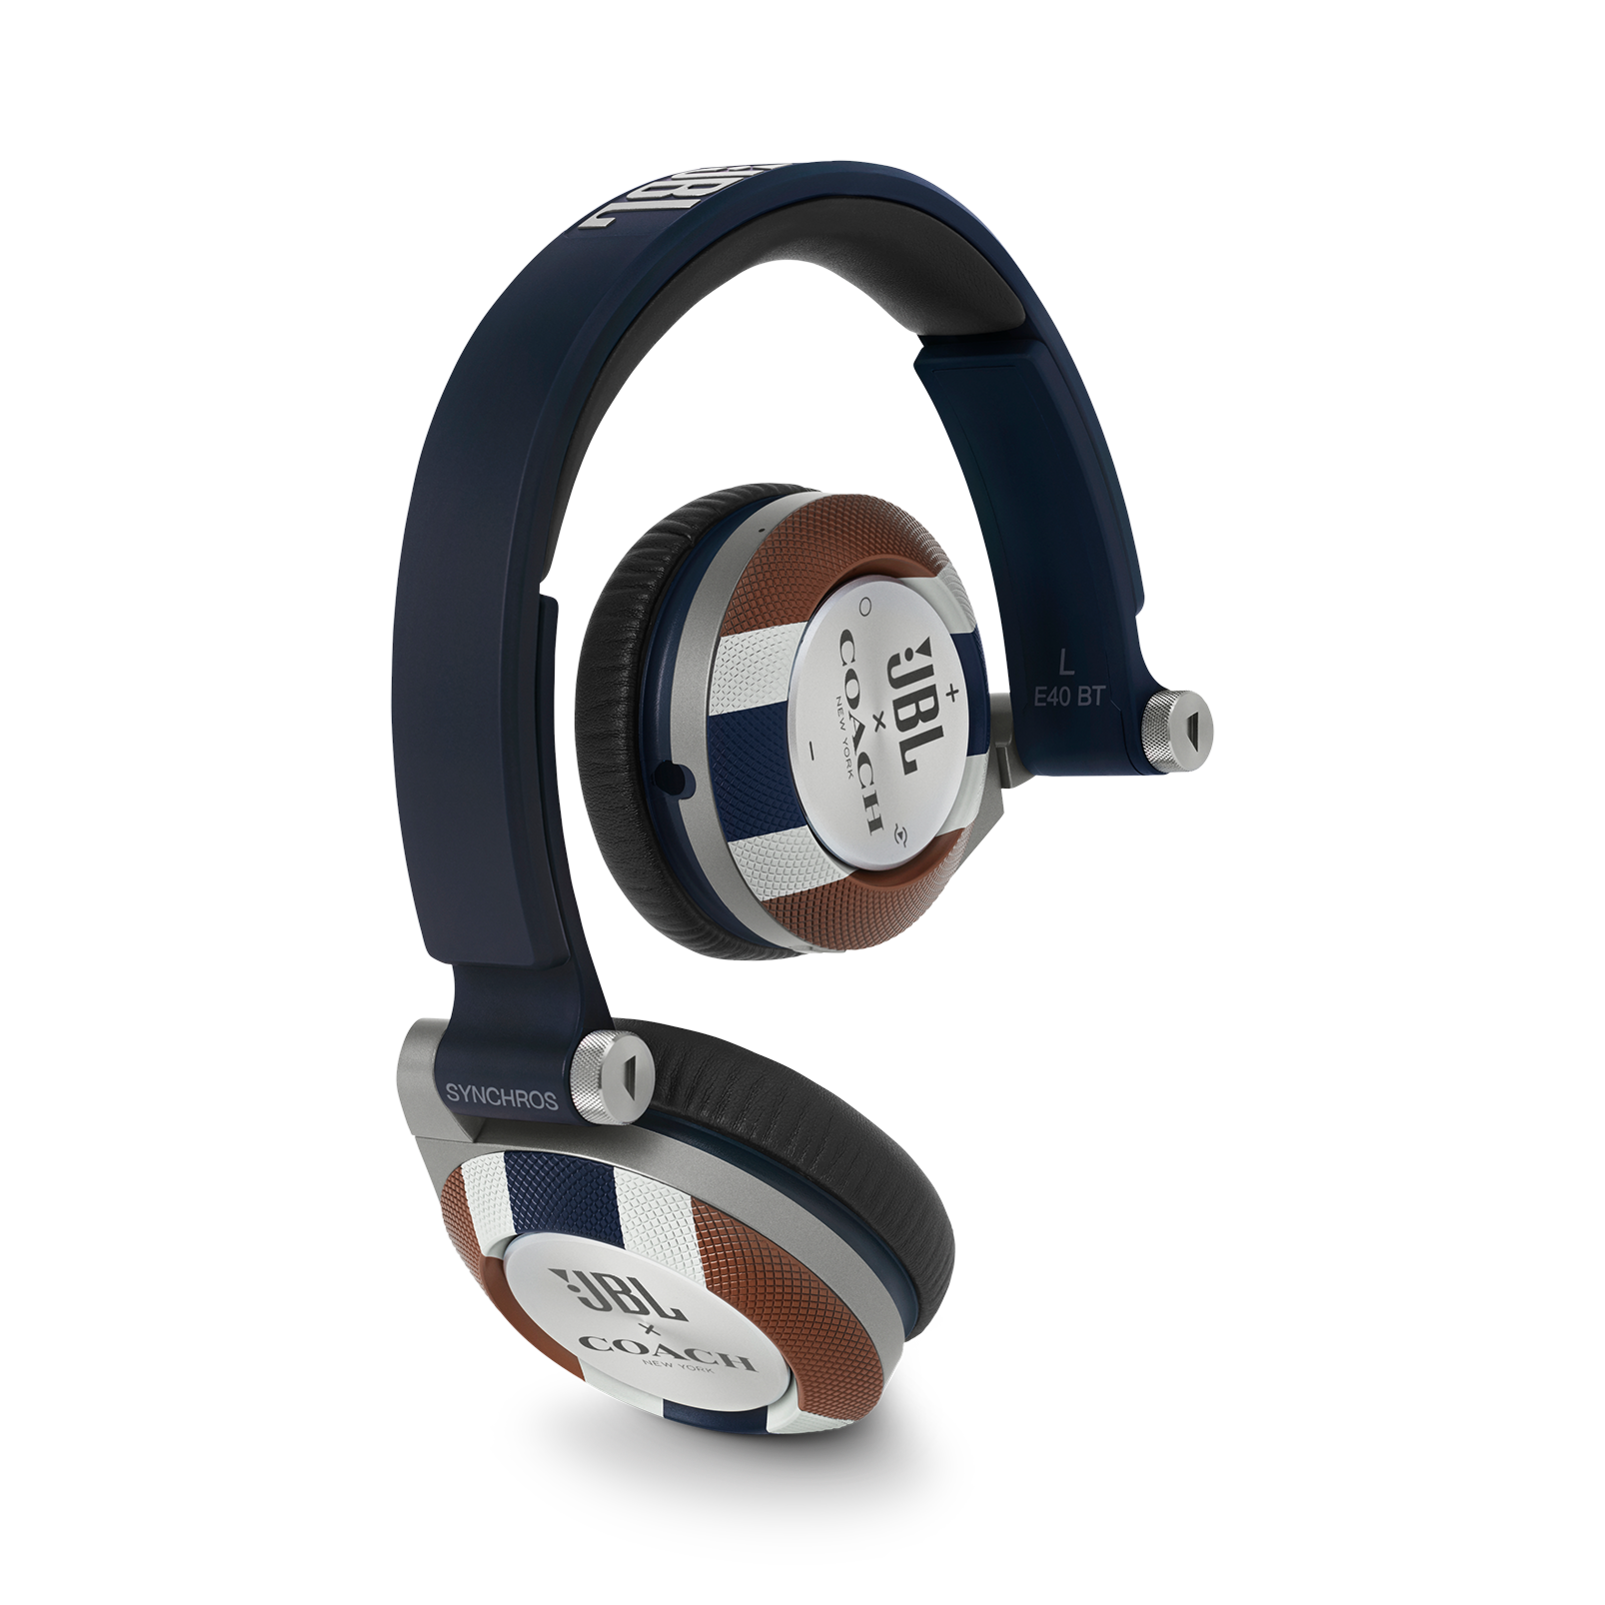 E40BT COACH Limited Edition - Varsity Stripe - On-ear, mobile phone-friendly headphones featuring JBL signature sound, wireless Bluetooth connectivity with ShareMe music sharing, and an ultra-comfortable fit. - Hero